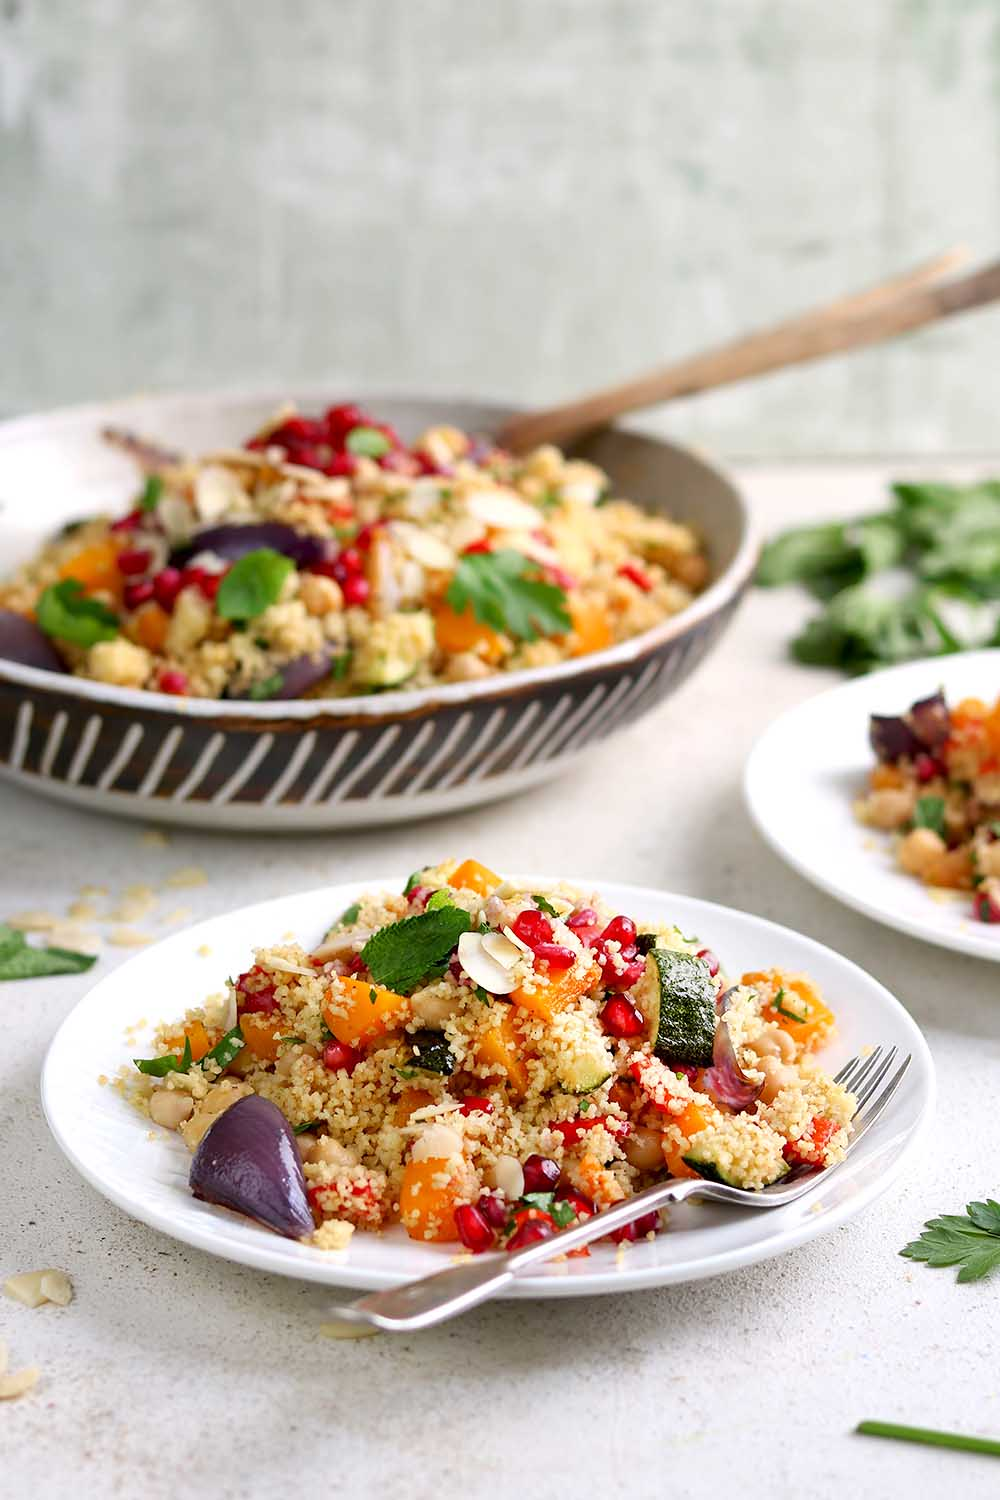 Couscous with roasted vegetables and chickpeas and herbs in a serving dish